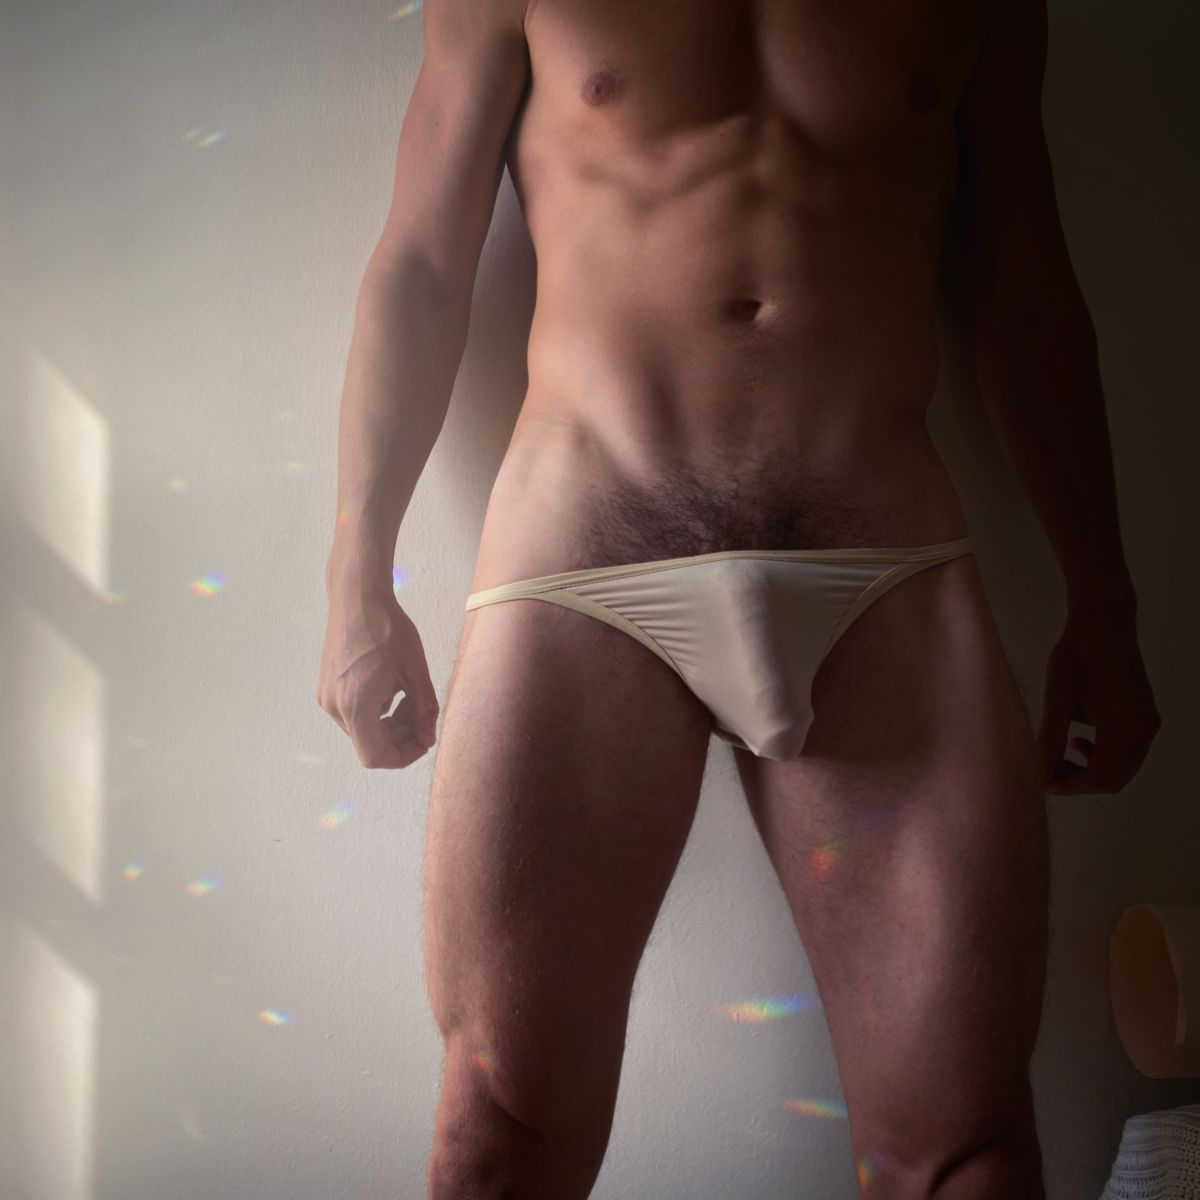 Big Oshen photos and videos onlyfans leaked